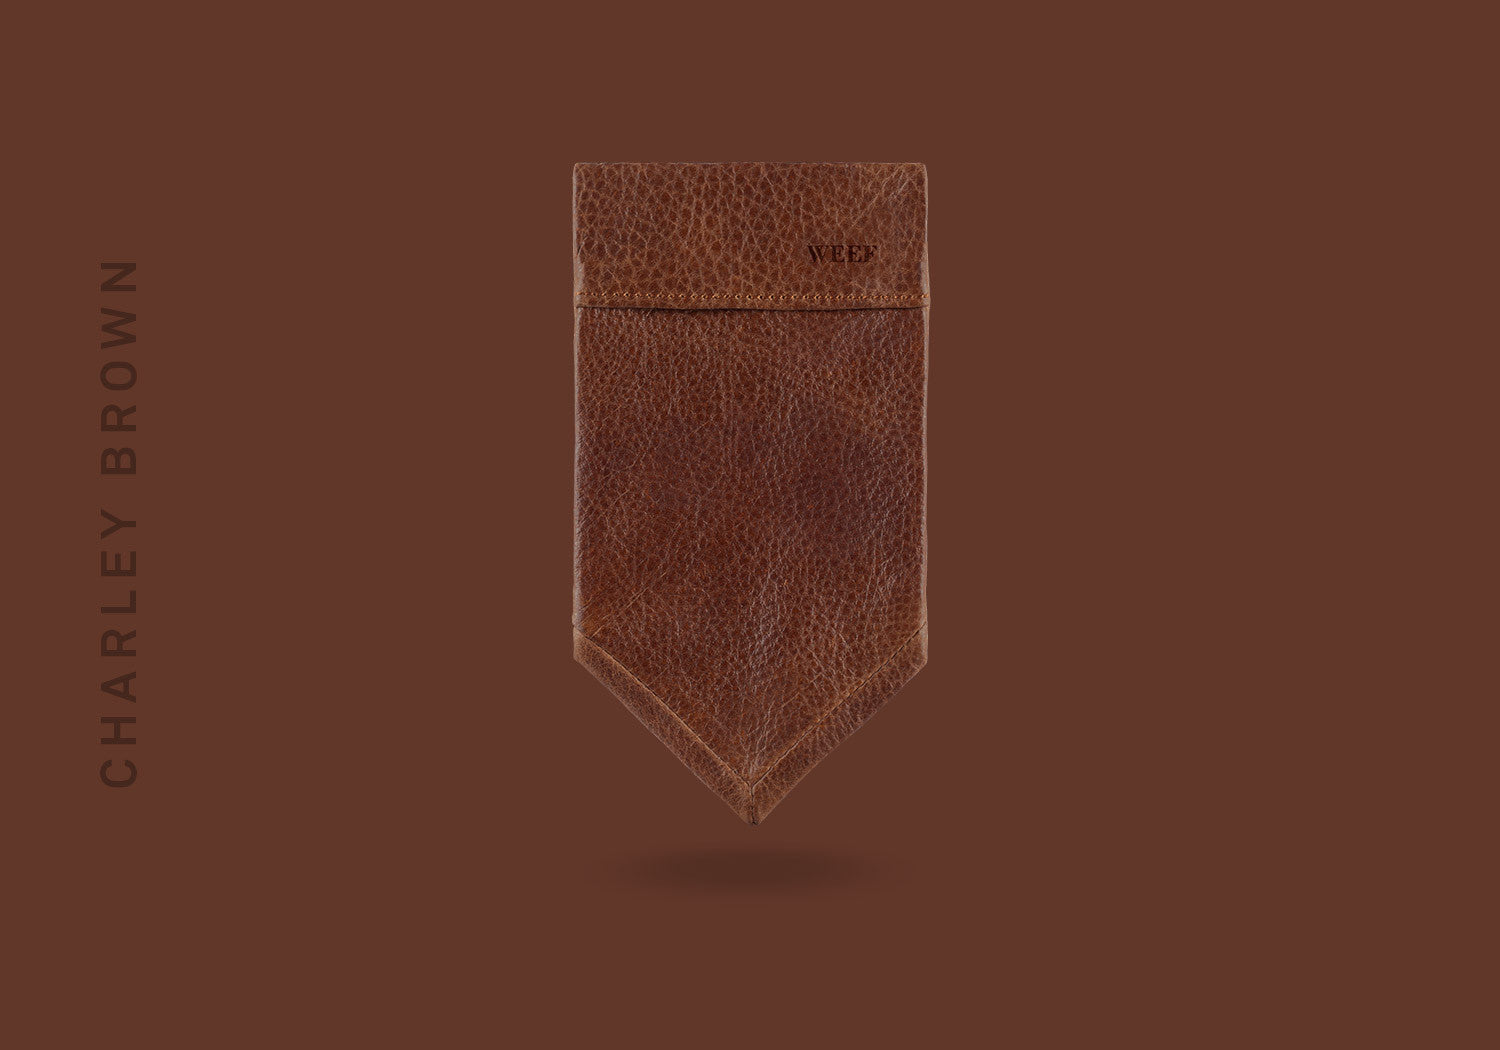 This charley brown WEEF handmade leather pocket square is a great present or gift idea for dapper and stylish gentlemen for fathers day, valentines day or Christmas.